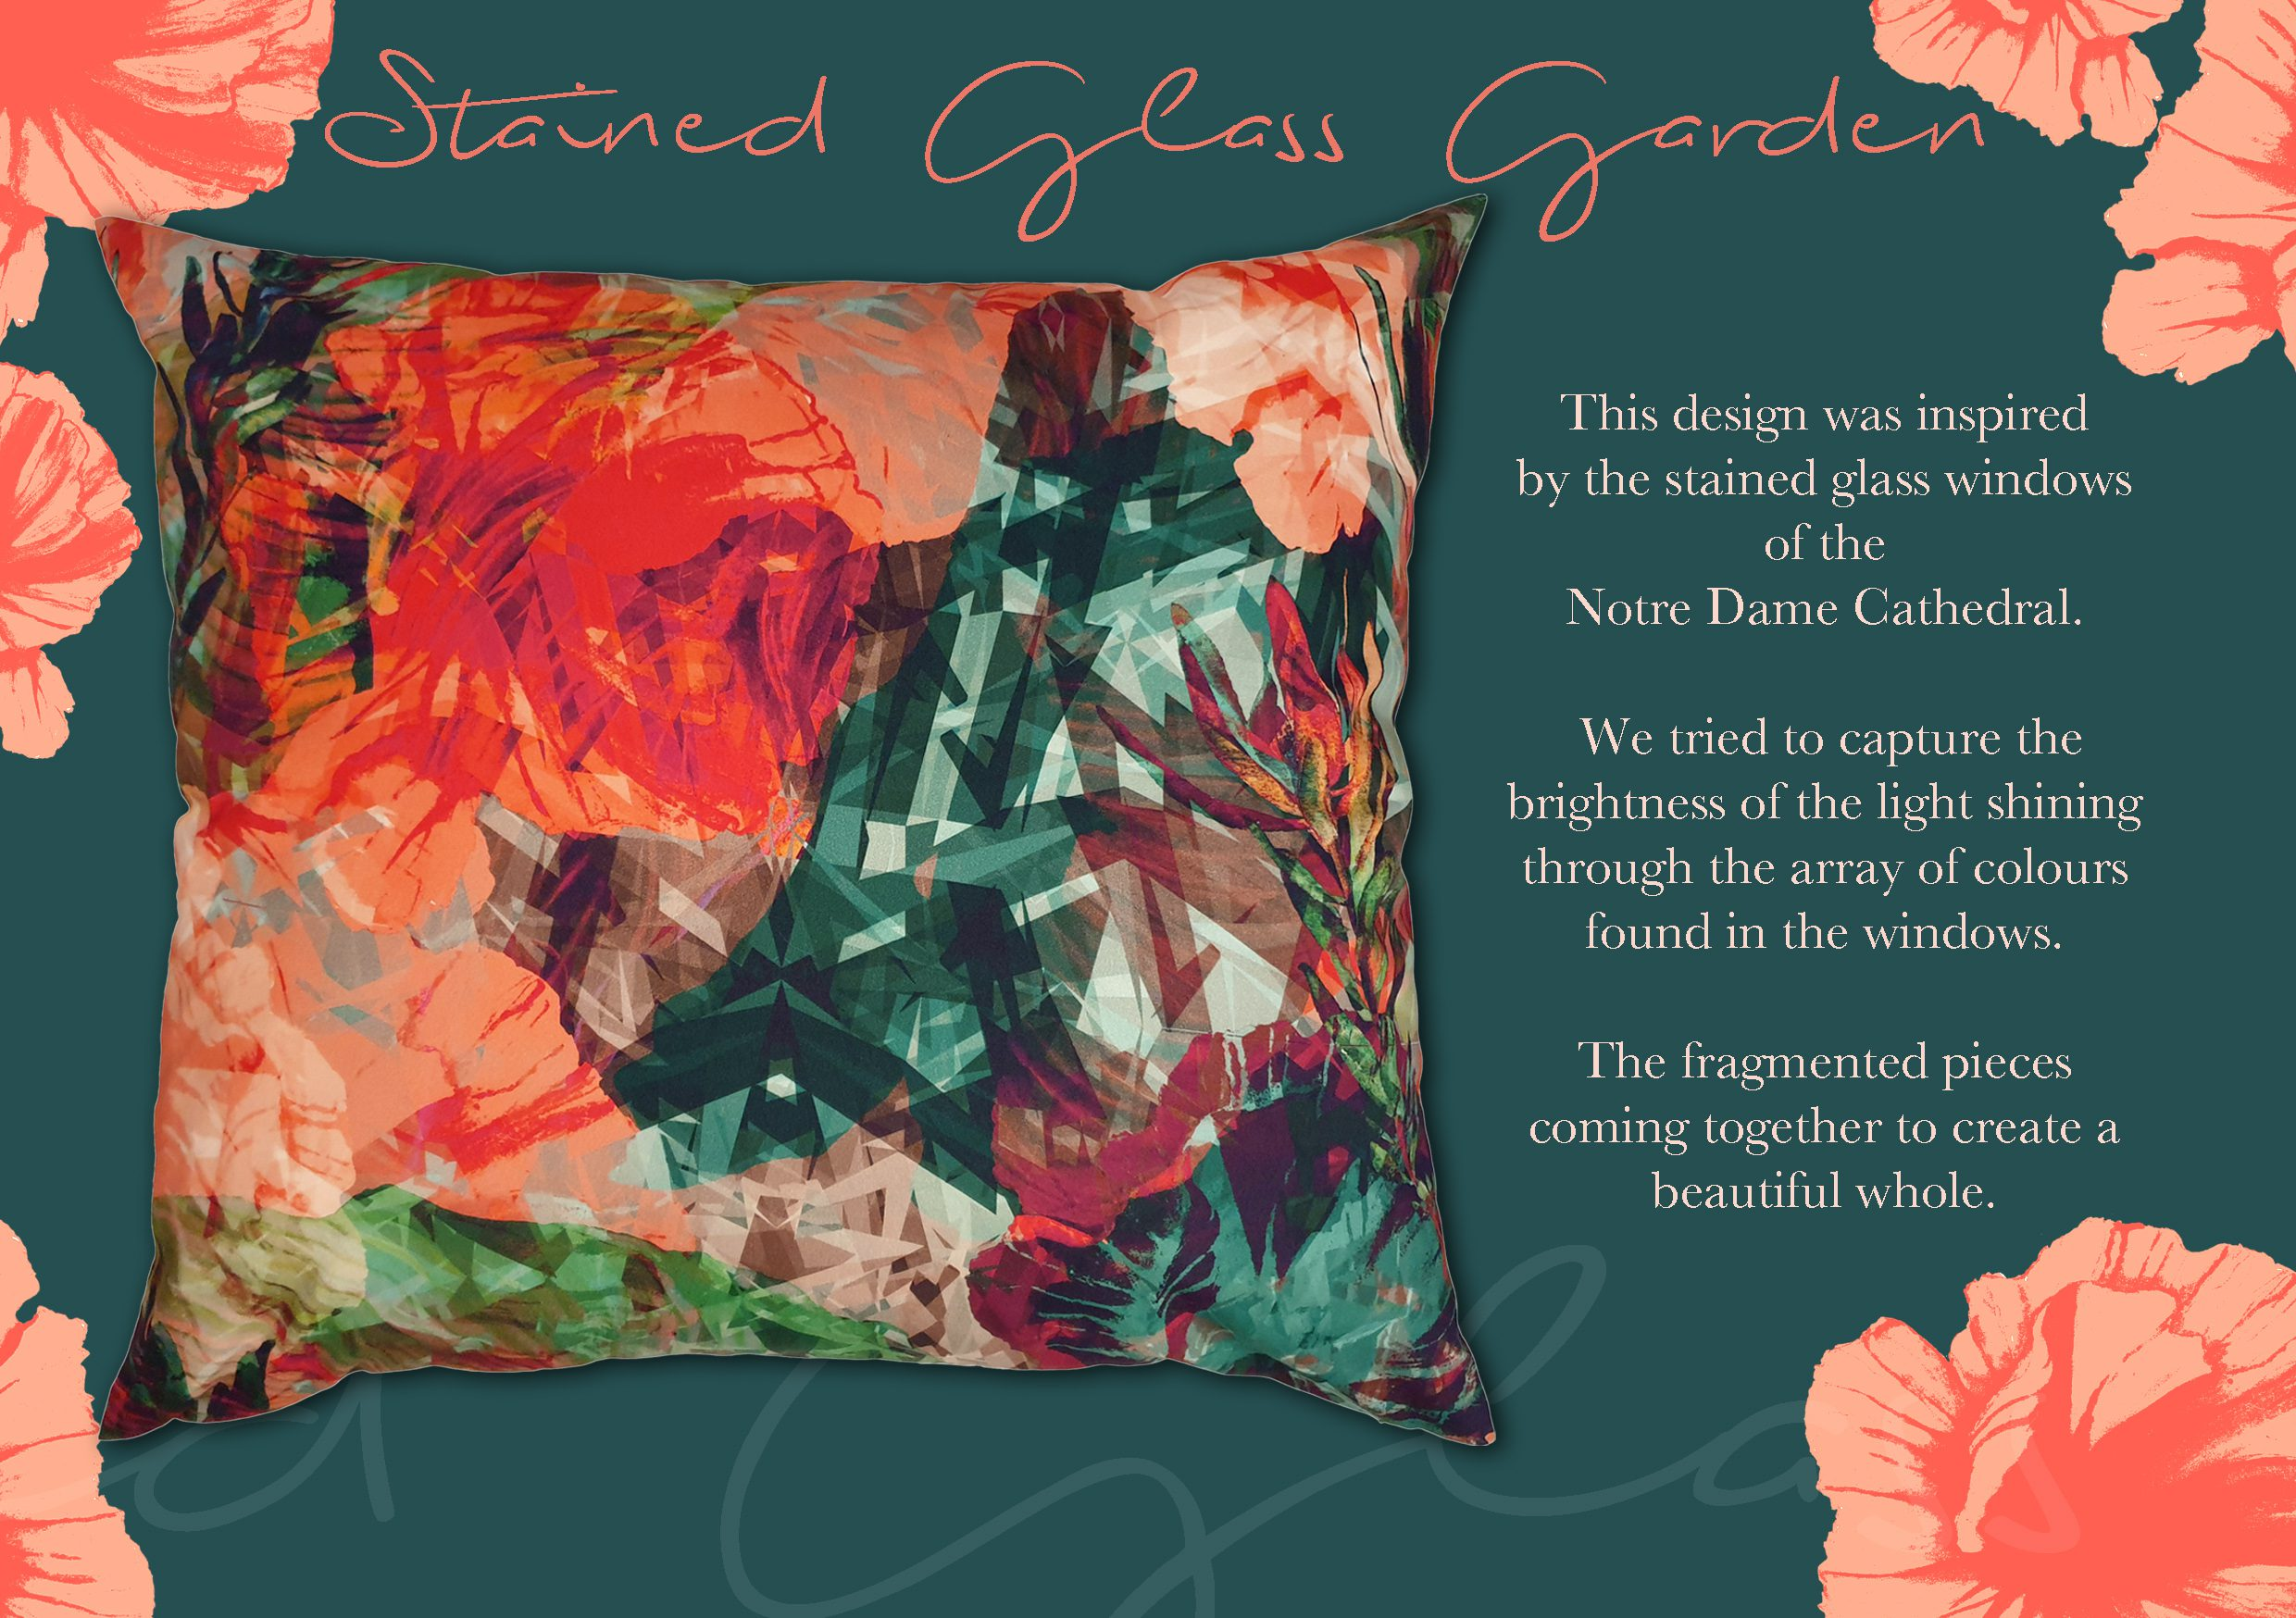 Stained Glass Garden Scatter Cushion | IV Fashion Design